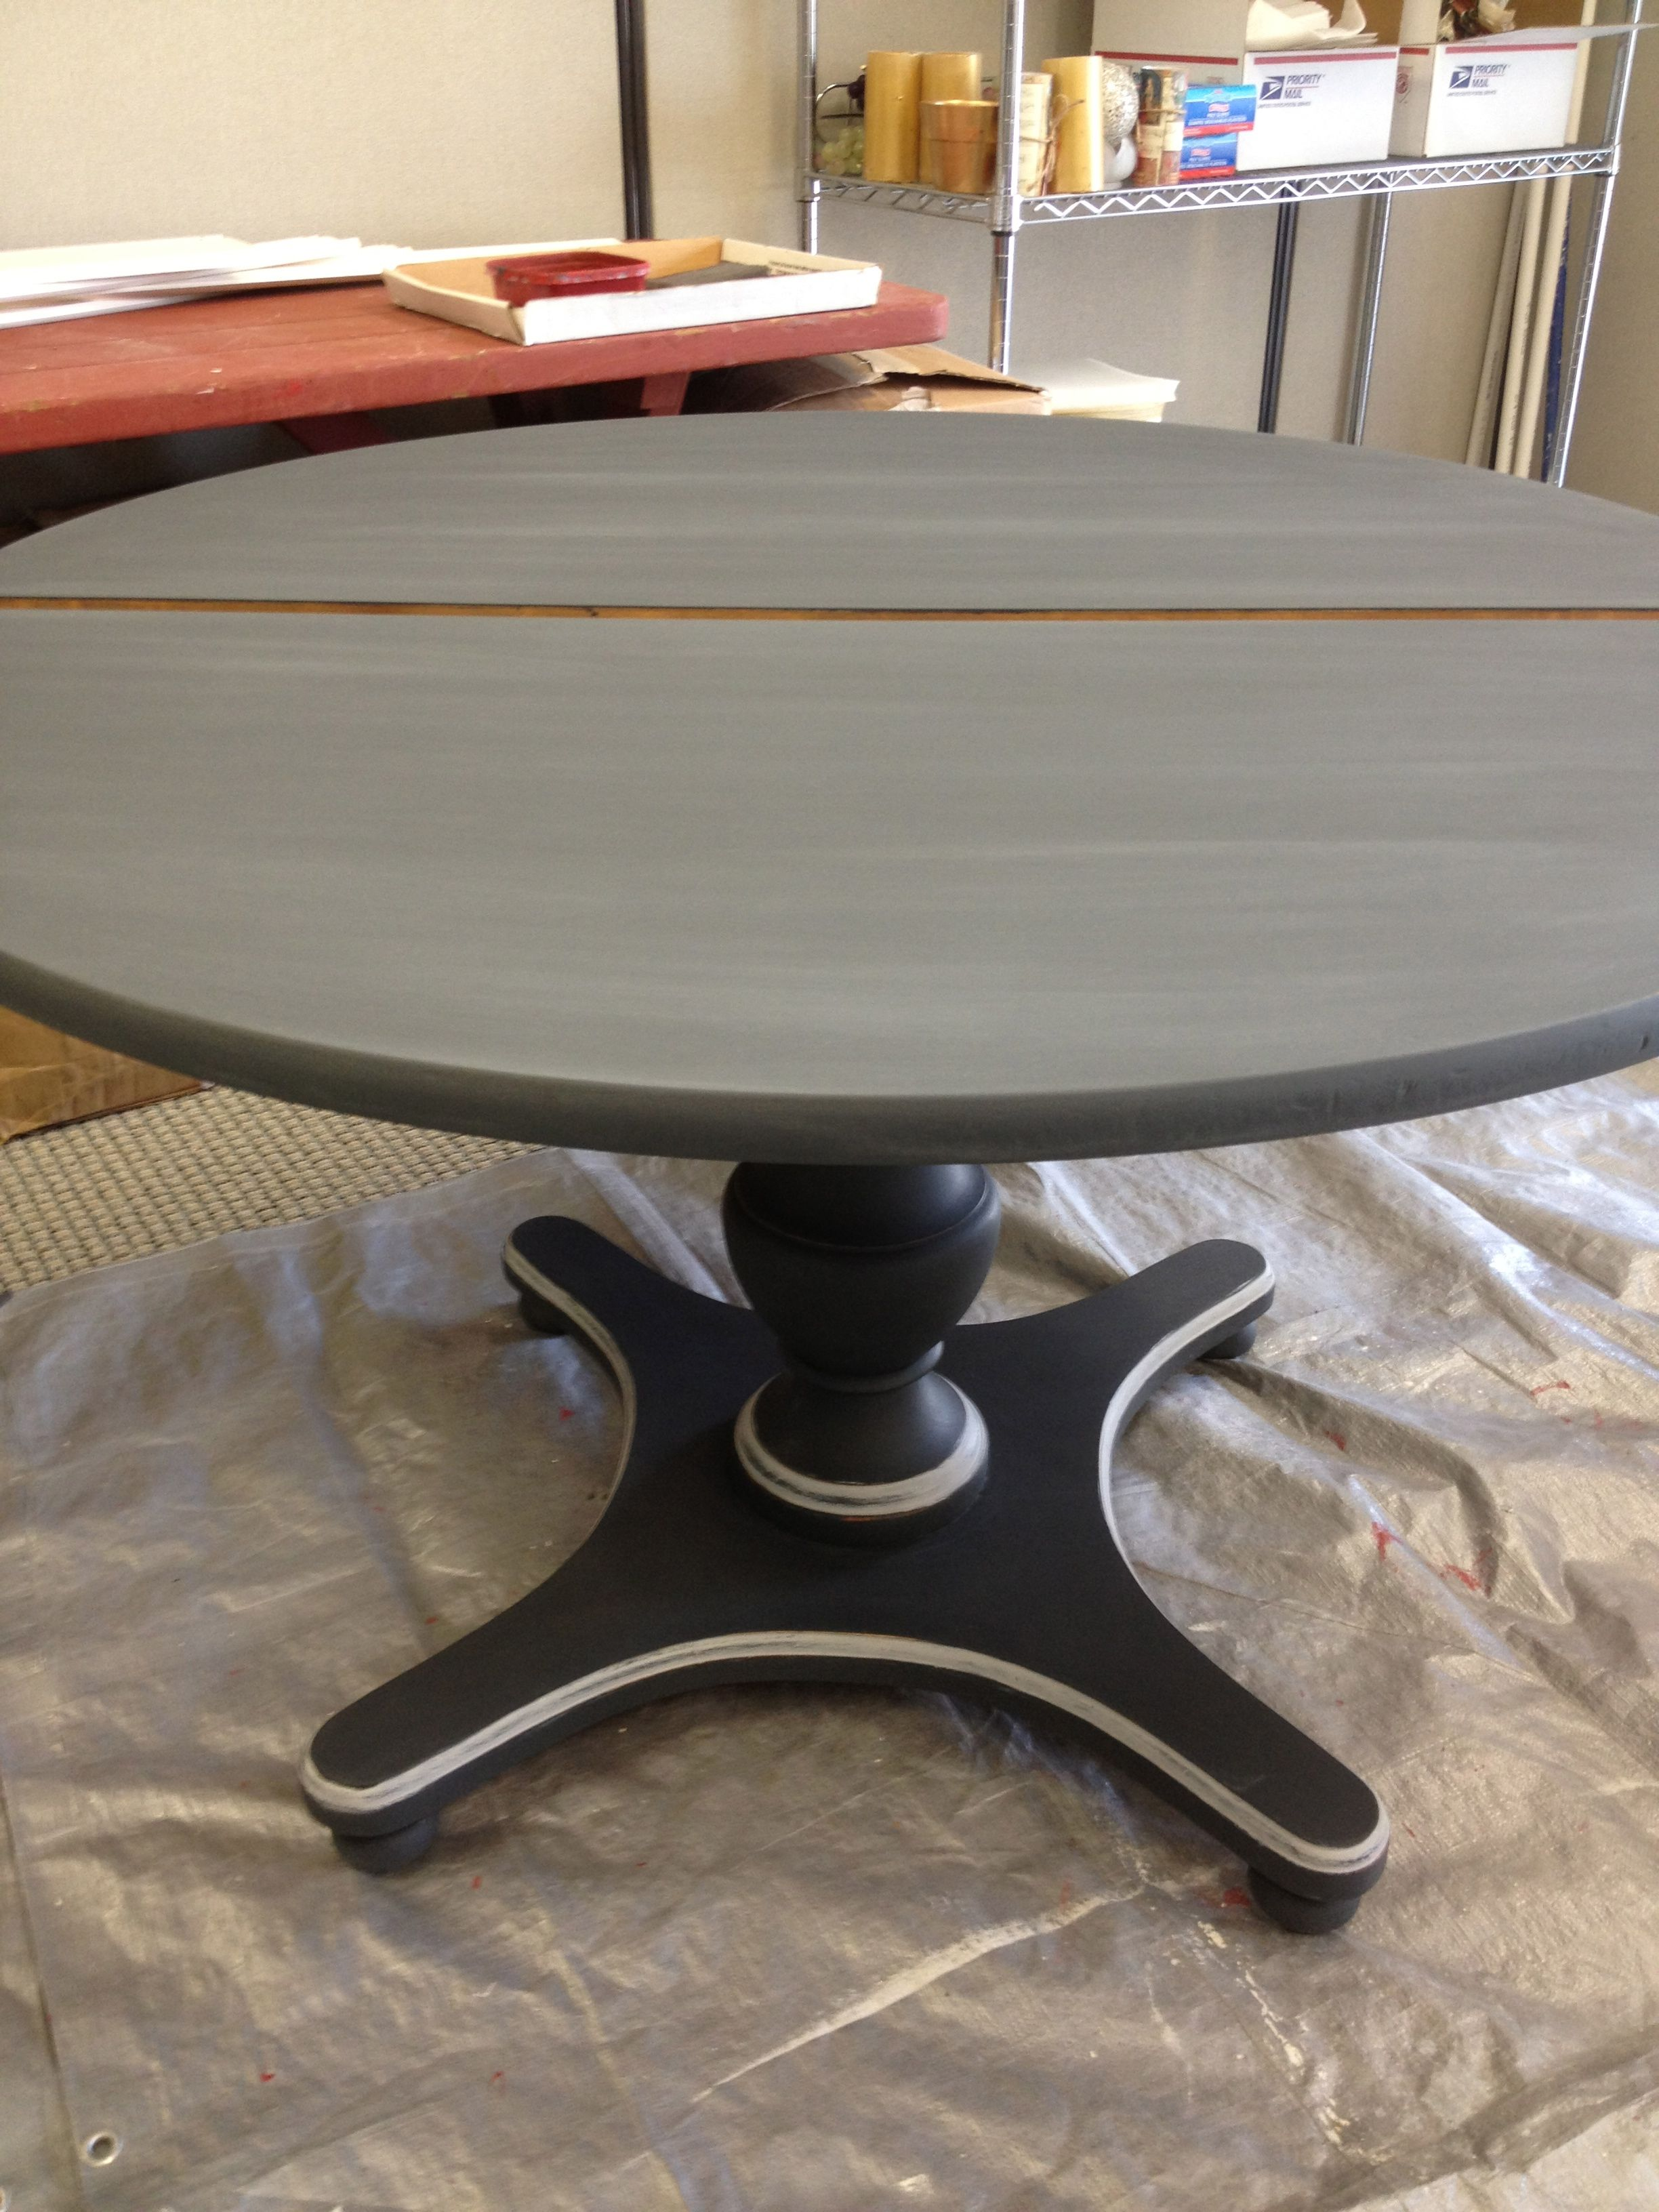 Yes, I Painted Over A Formica Table Top! (sold)